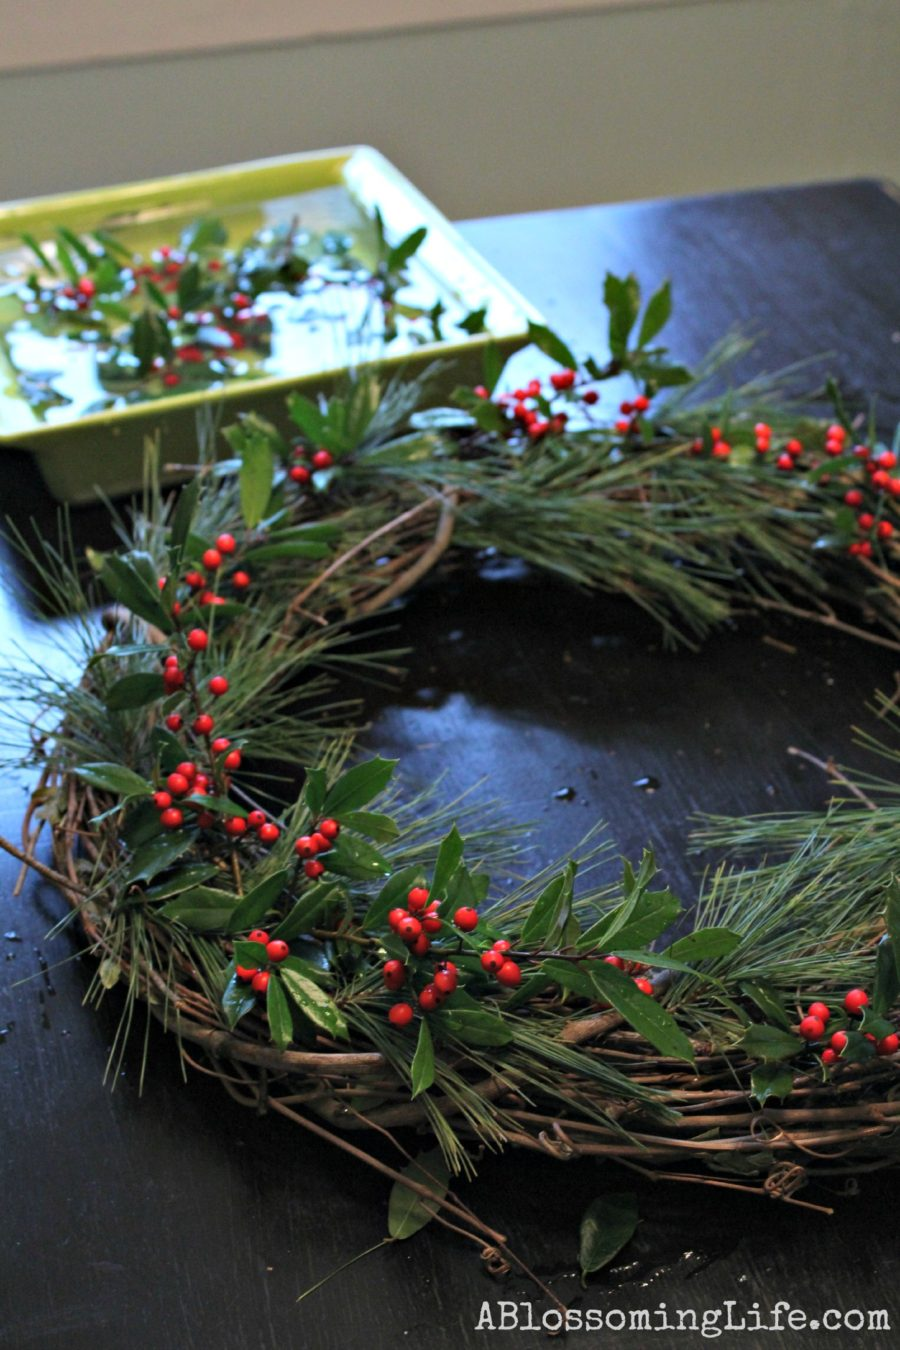 Placing holly in a twig wreath with evergreens to create a DIY Christmas Wreath